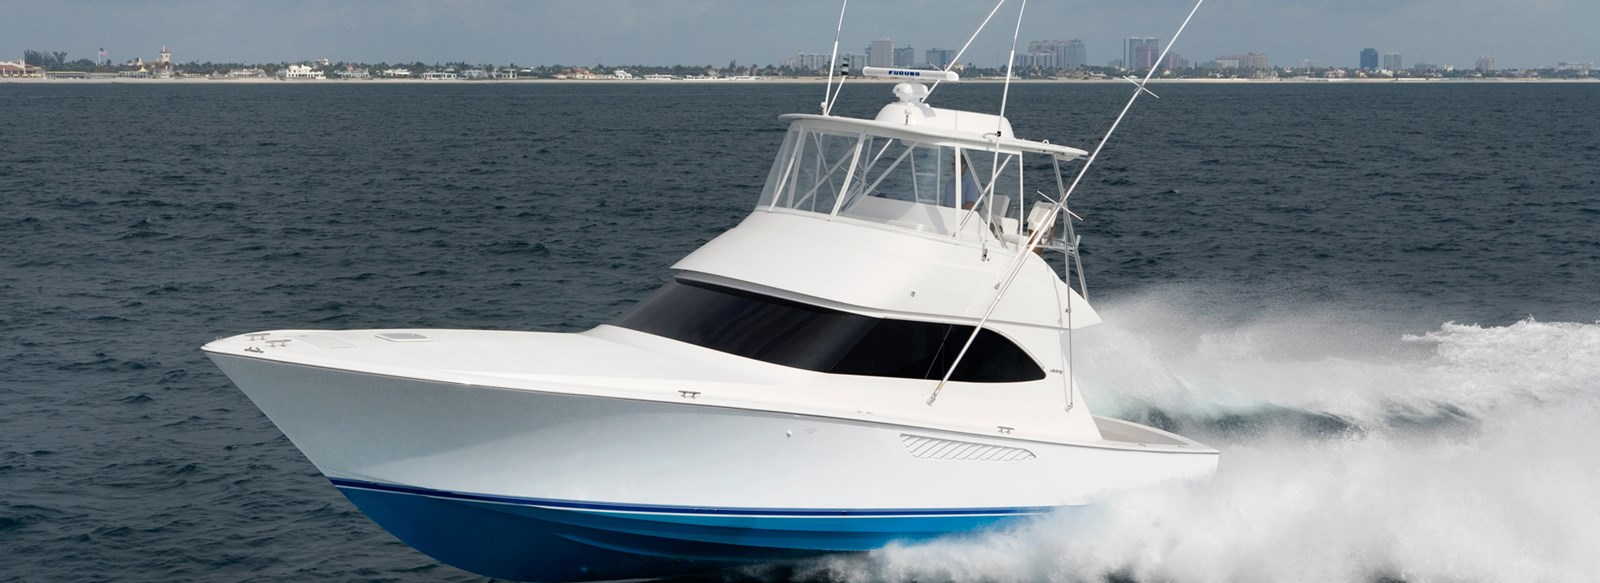 New Viking 46 Convertible Yachts For Sale